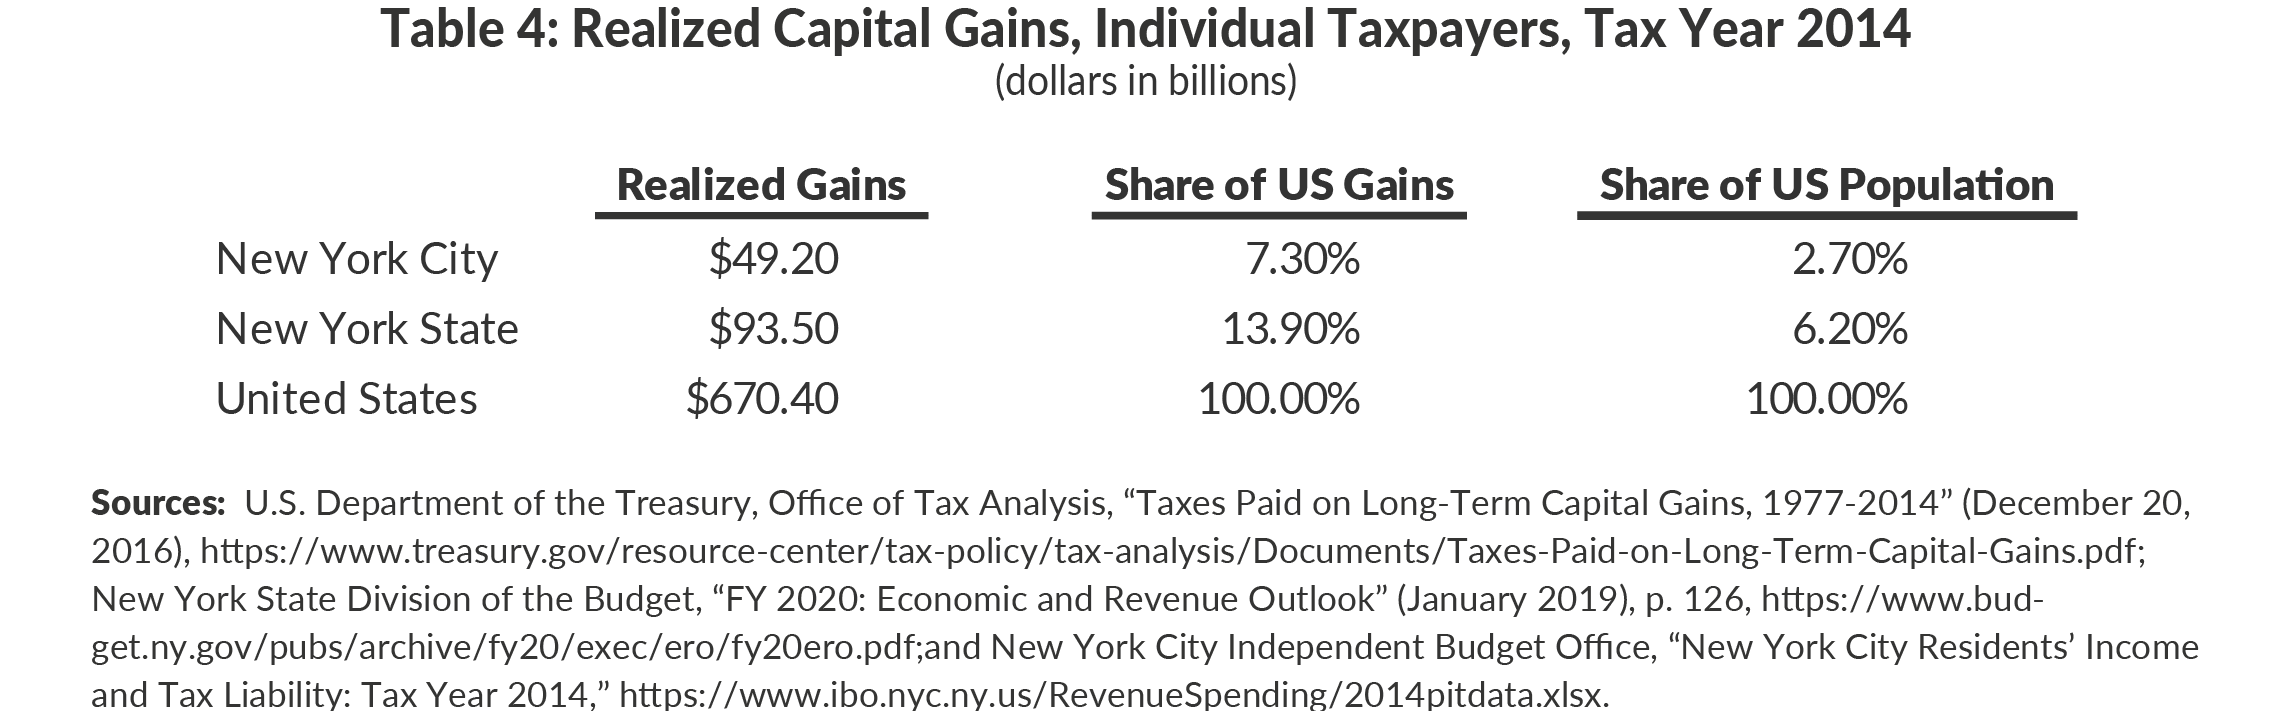 Table 4. Realized Capital Gains, Individual Taxpayers, Tax Year 2014